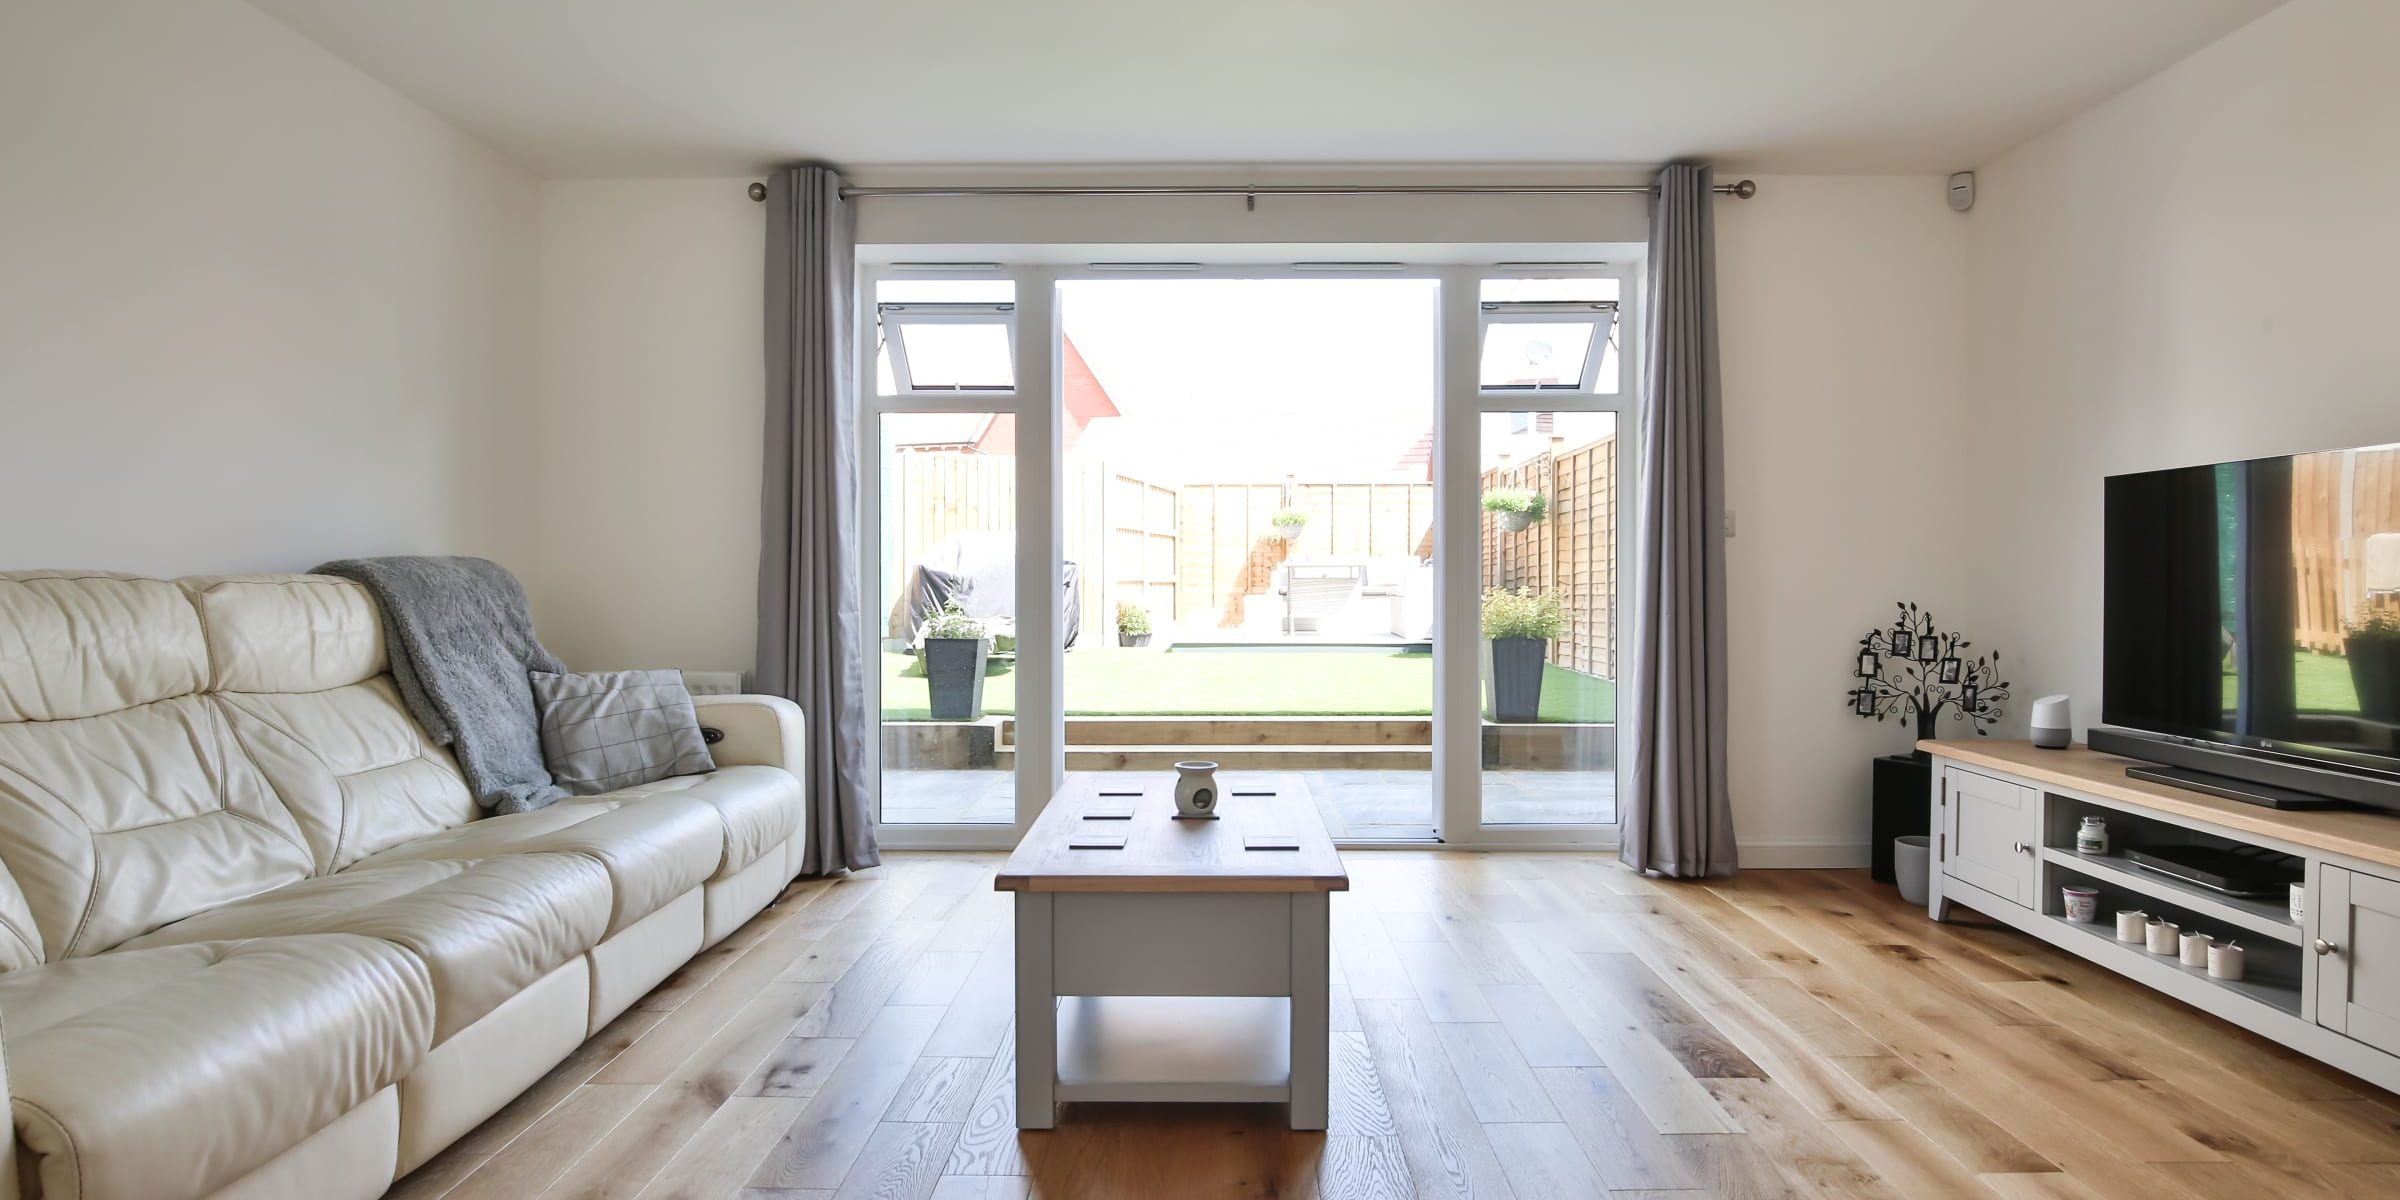 Swindon home with Eiger Petit wood floors 8